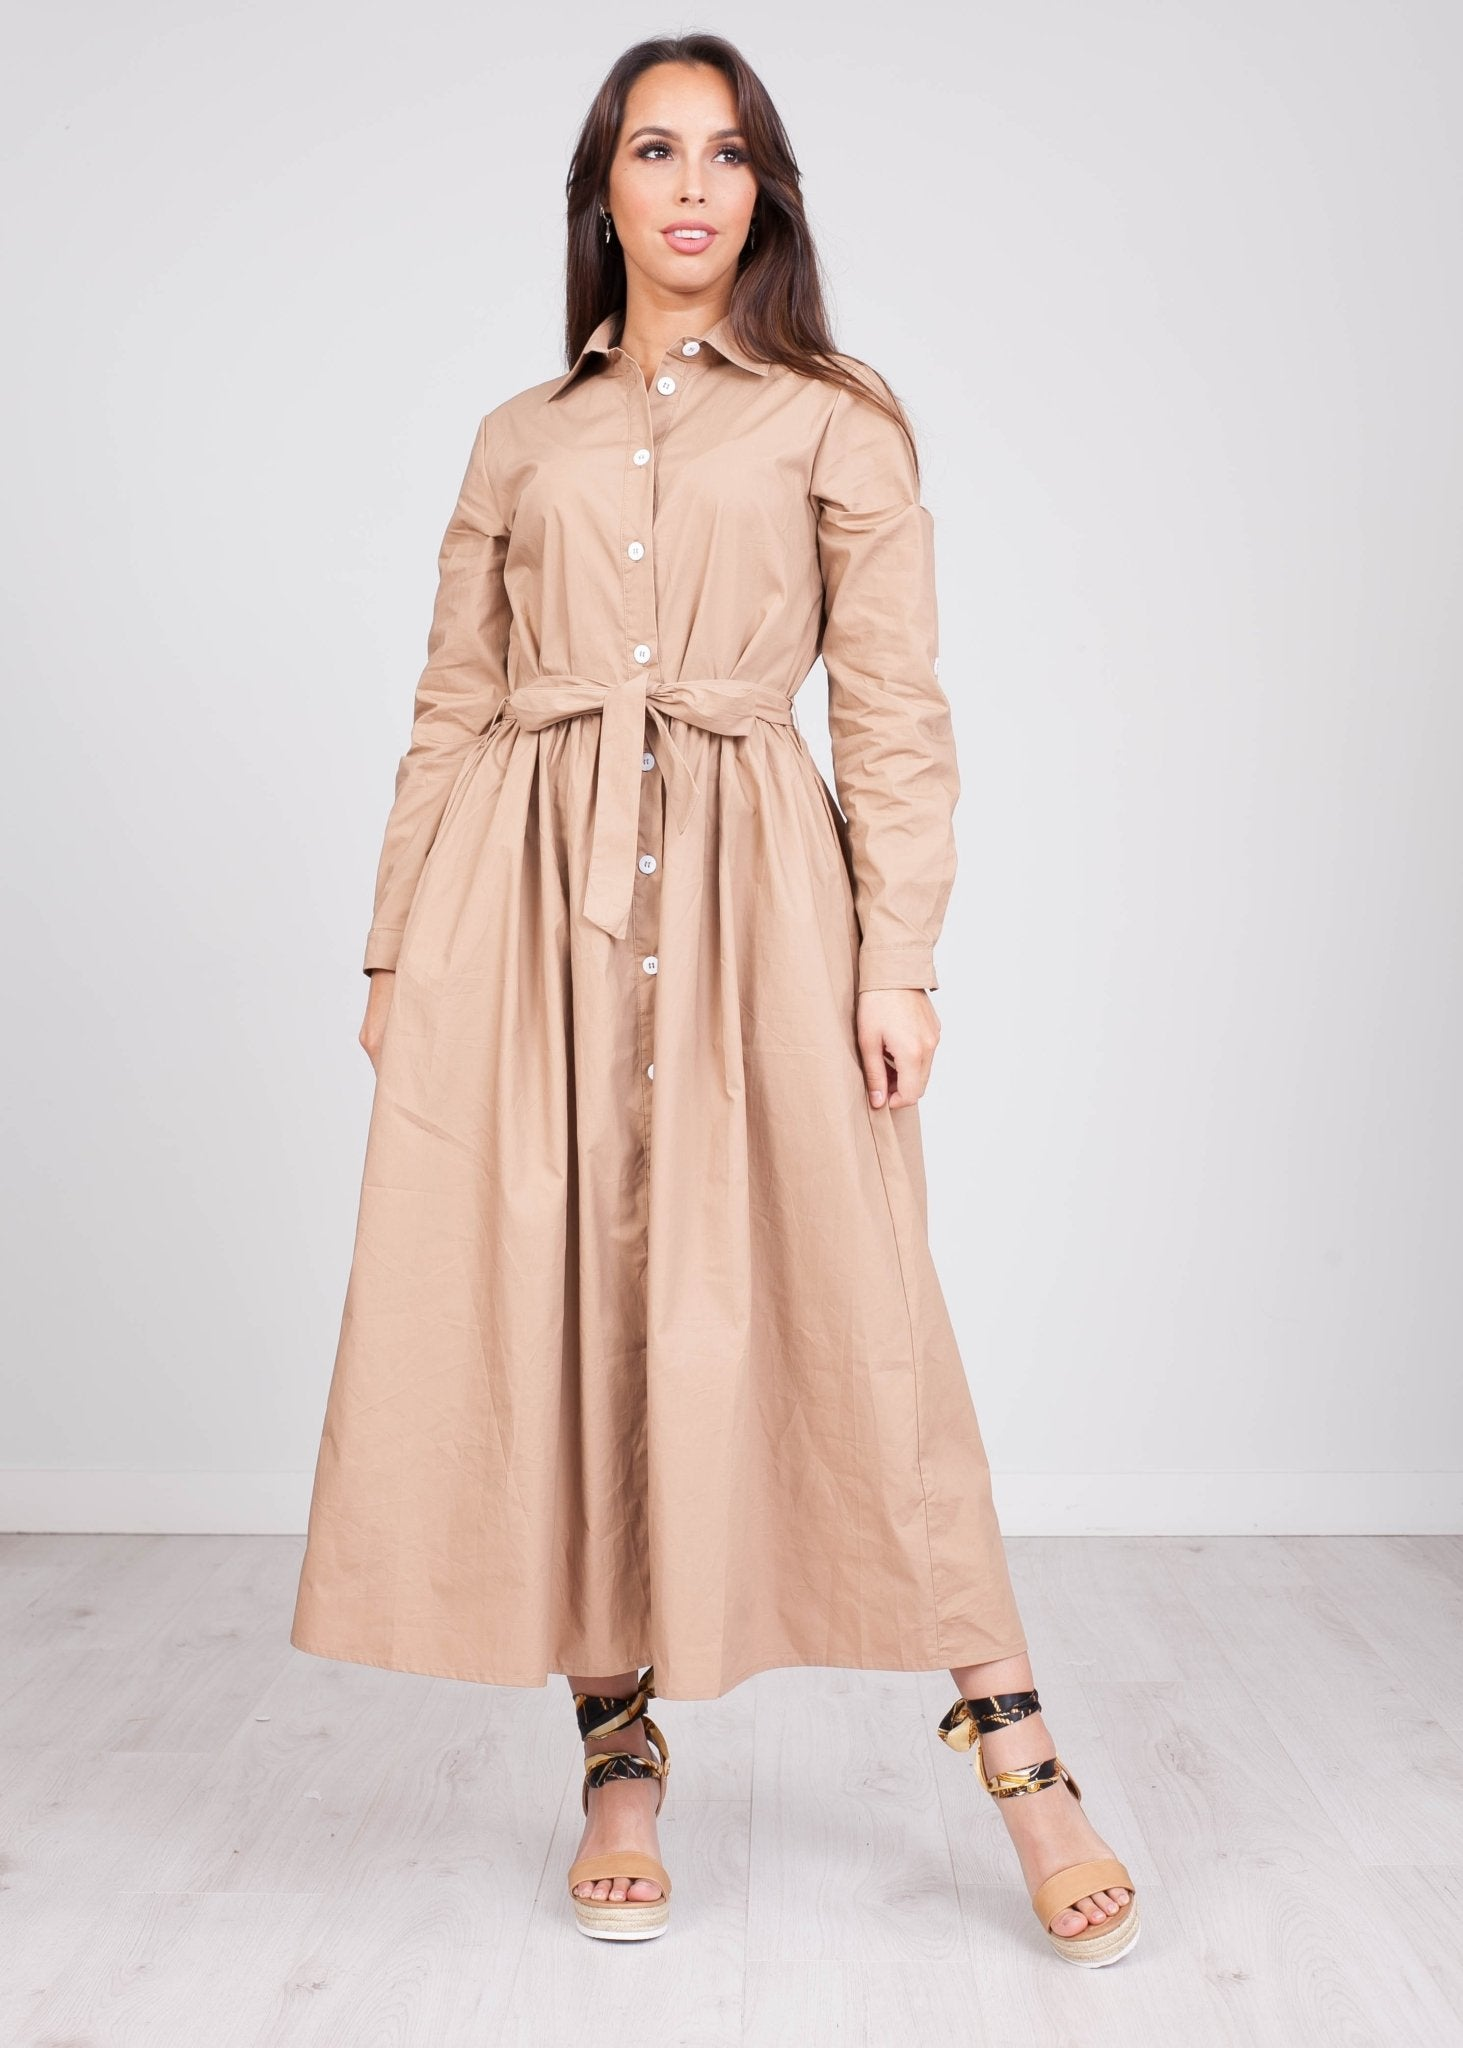 FiFi Beige Midi Dress - The Walk in Wardrobe